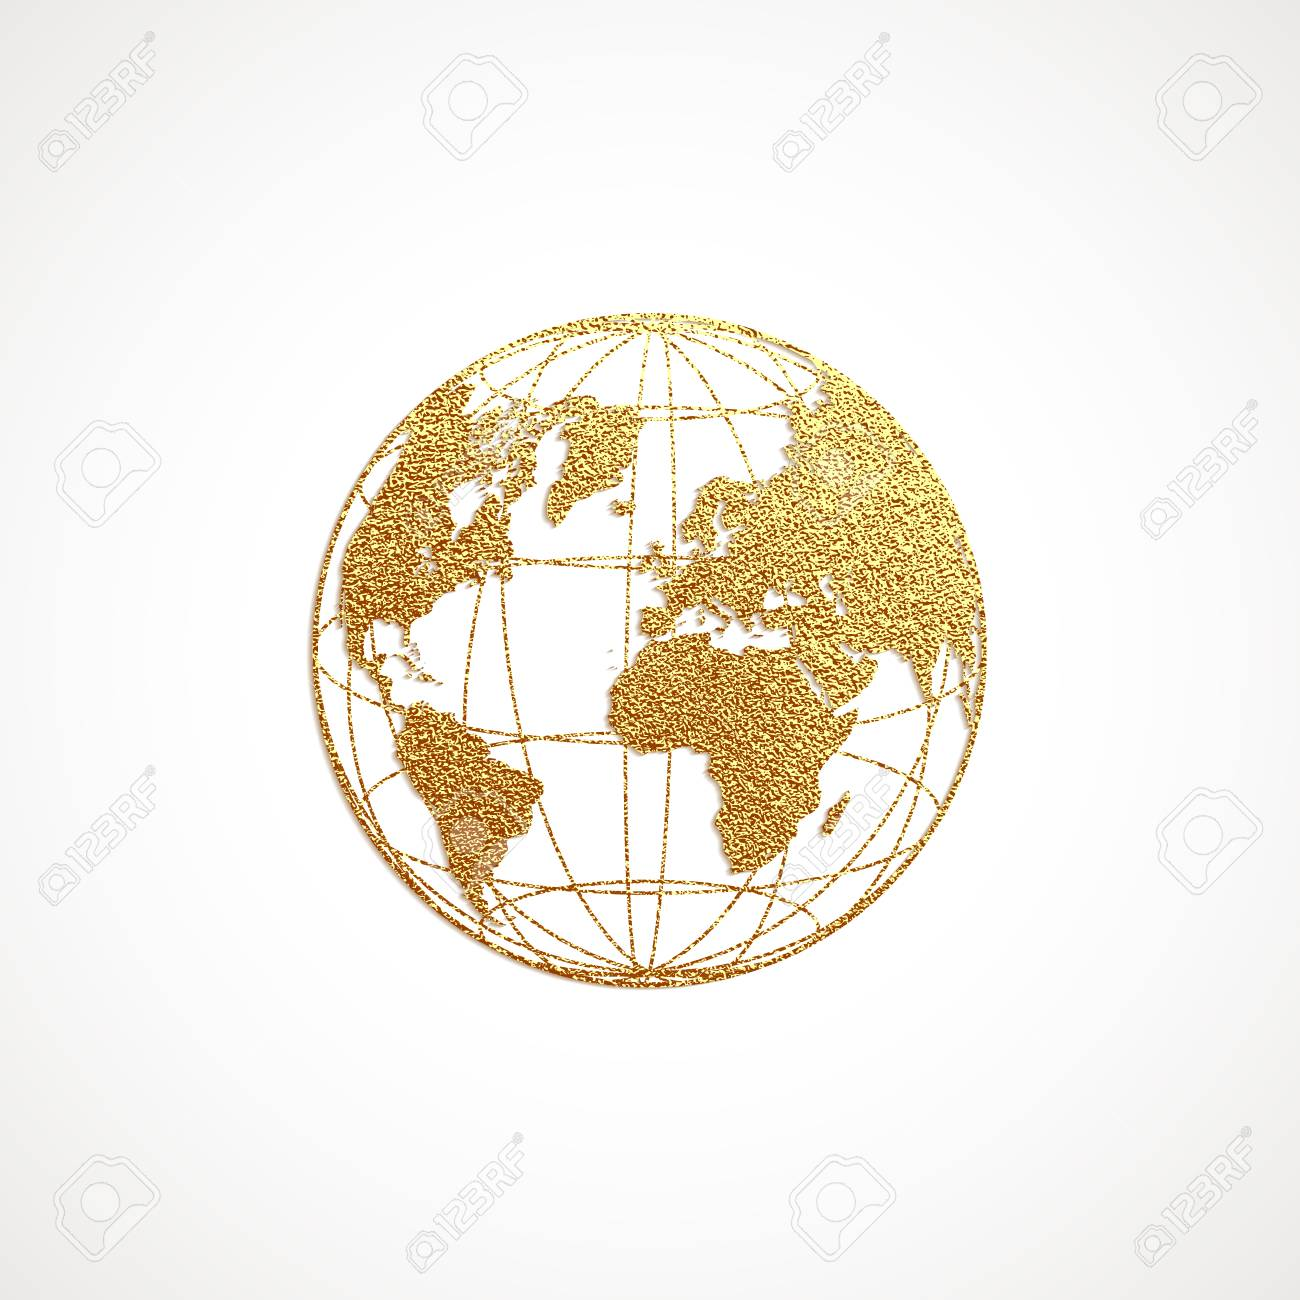 Creative Gold Map Of The World. Vector Illustration. Golden